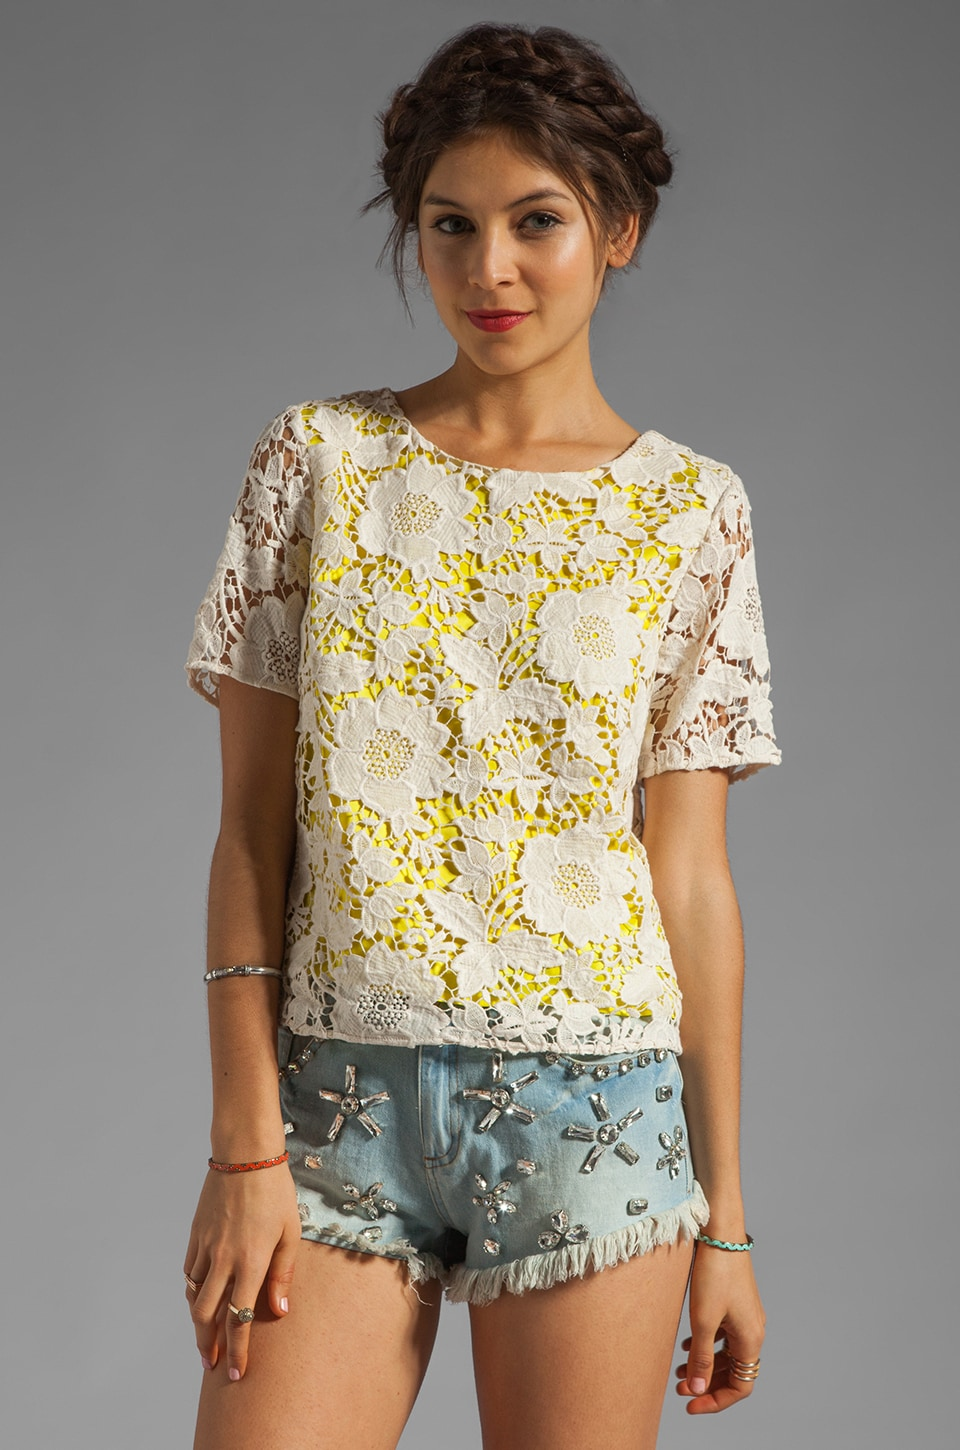 By Malene Birger Modish Life Voleria Top in Neon Yellow with Cream Lace